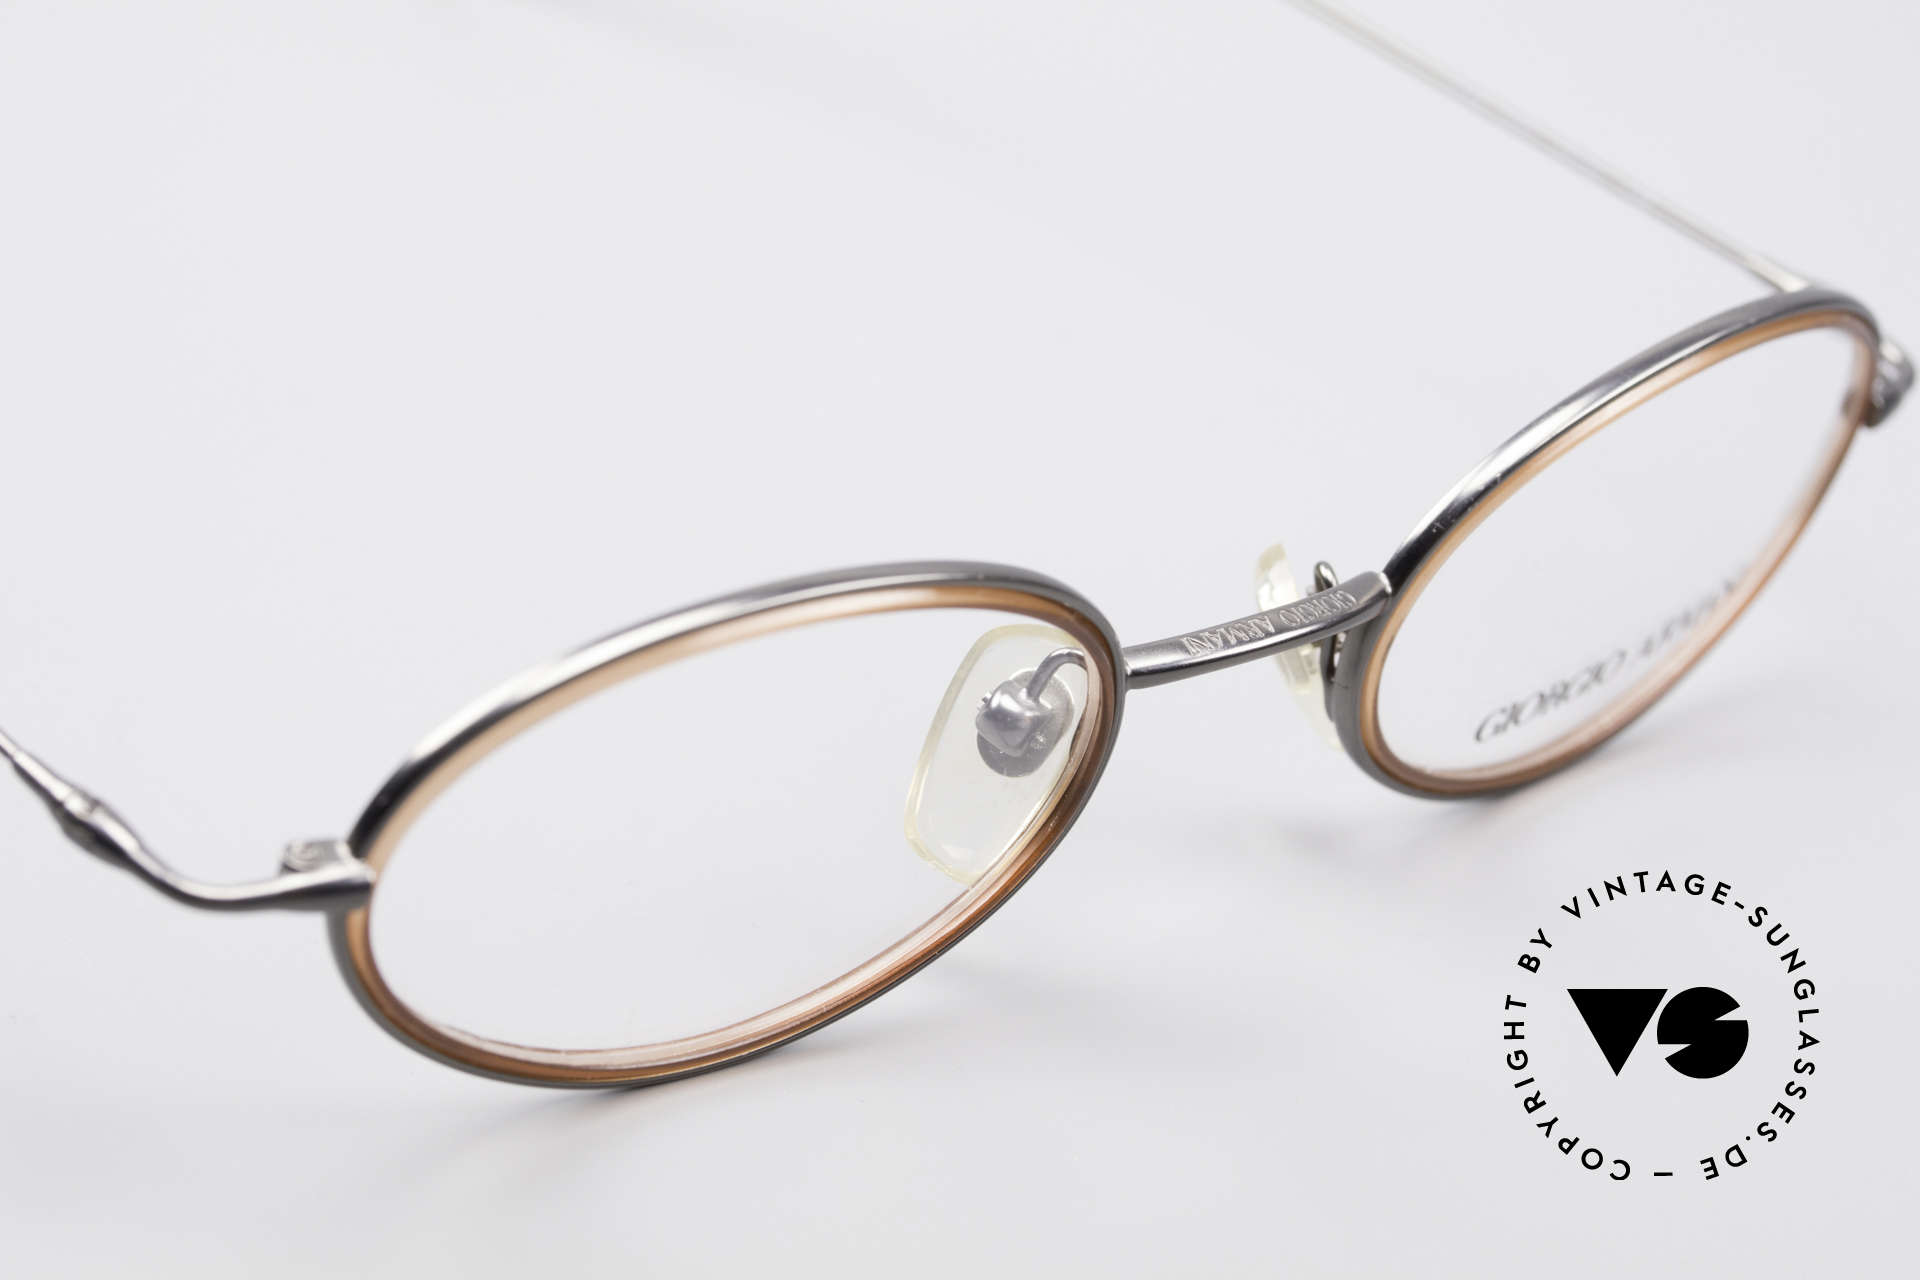 Giorgio Armani 1012 Oval Vintage Unisex Frame, NO RETRO EYEWEAR, but a 30 years old Original, Made for Men and Women